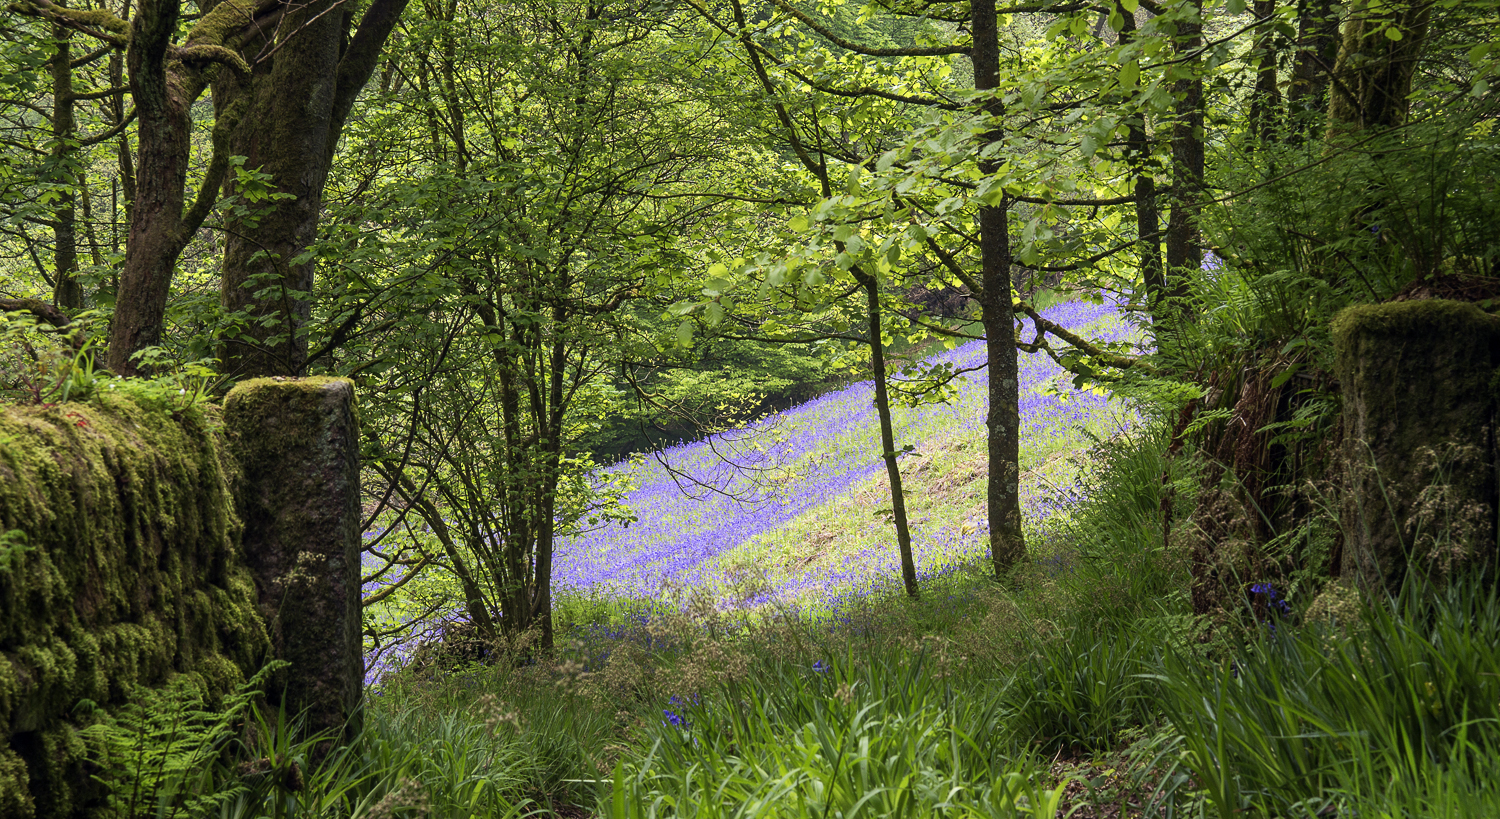 Track to Bluebell field